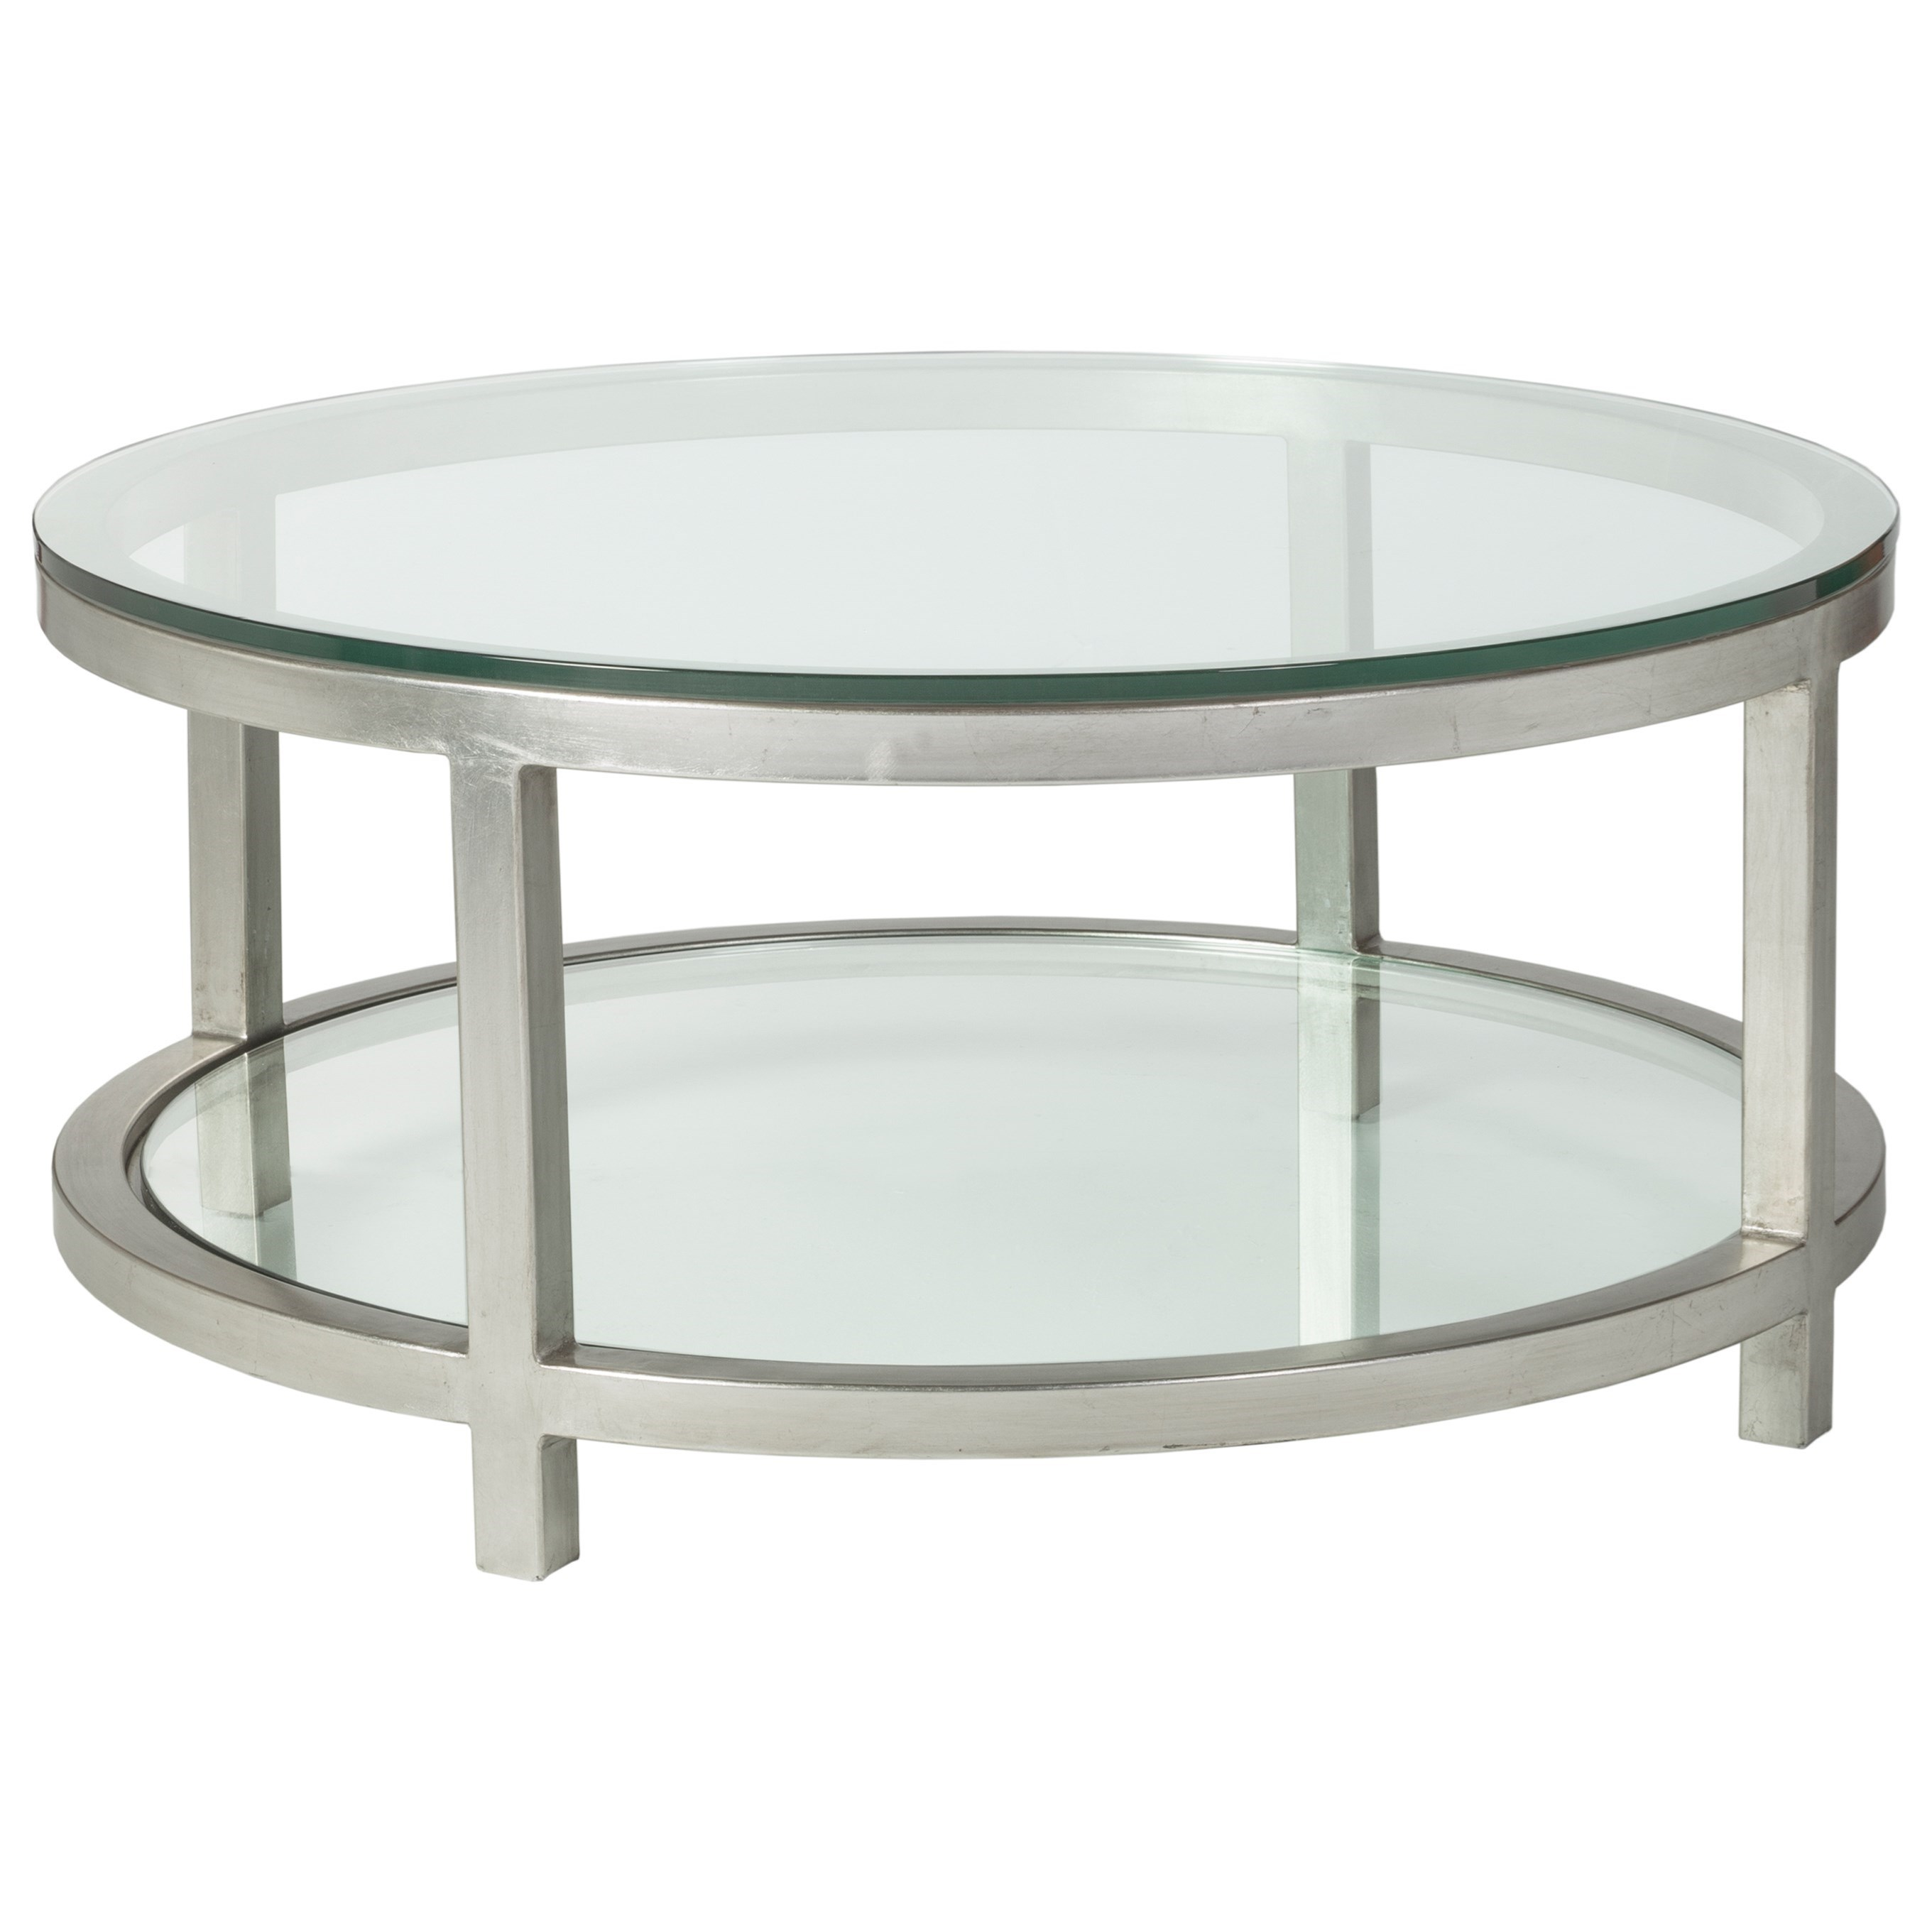 Metal Designs Per Se Round Cocktail Table by Artistica at Alison Craig Home Furnishings